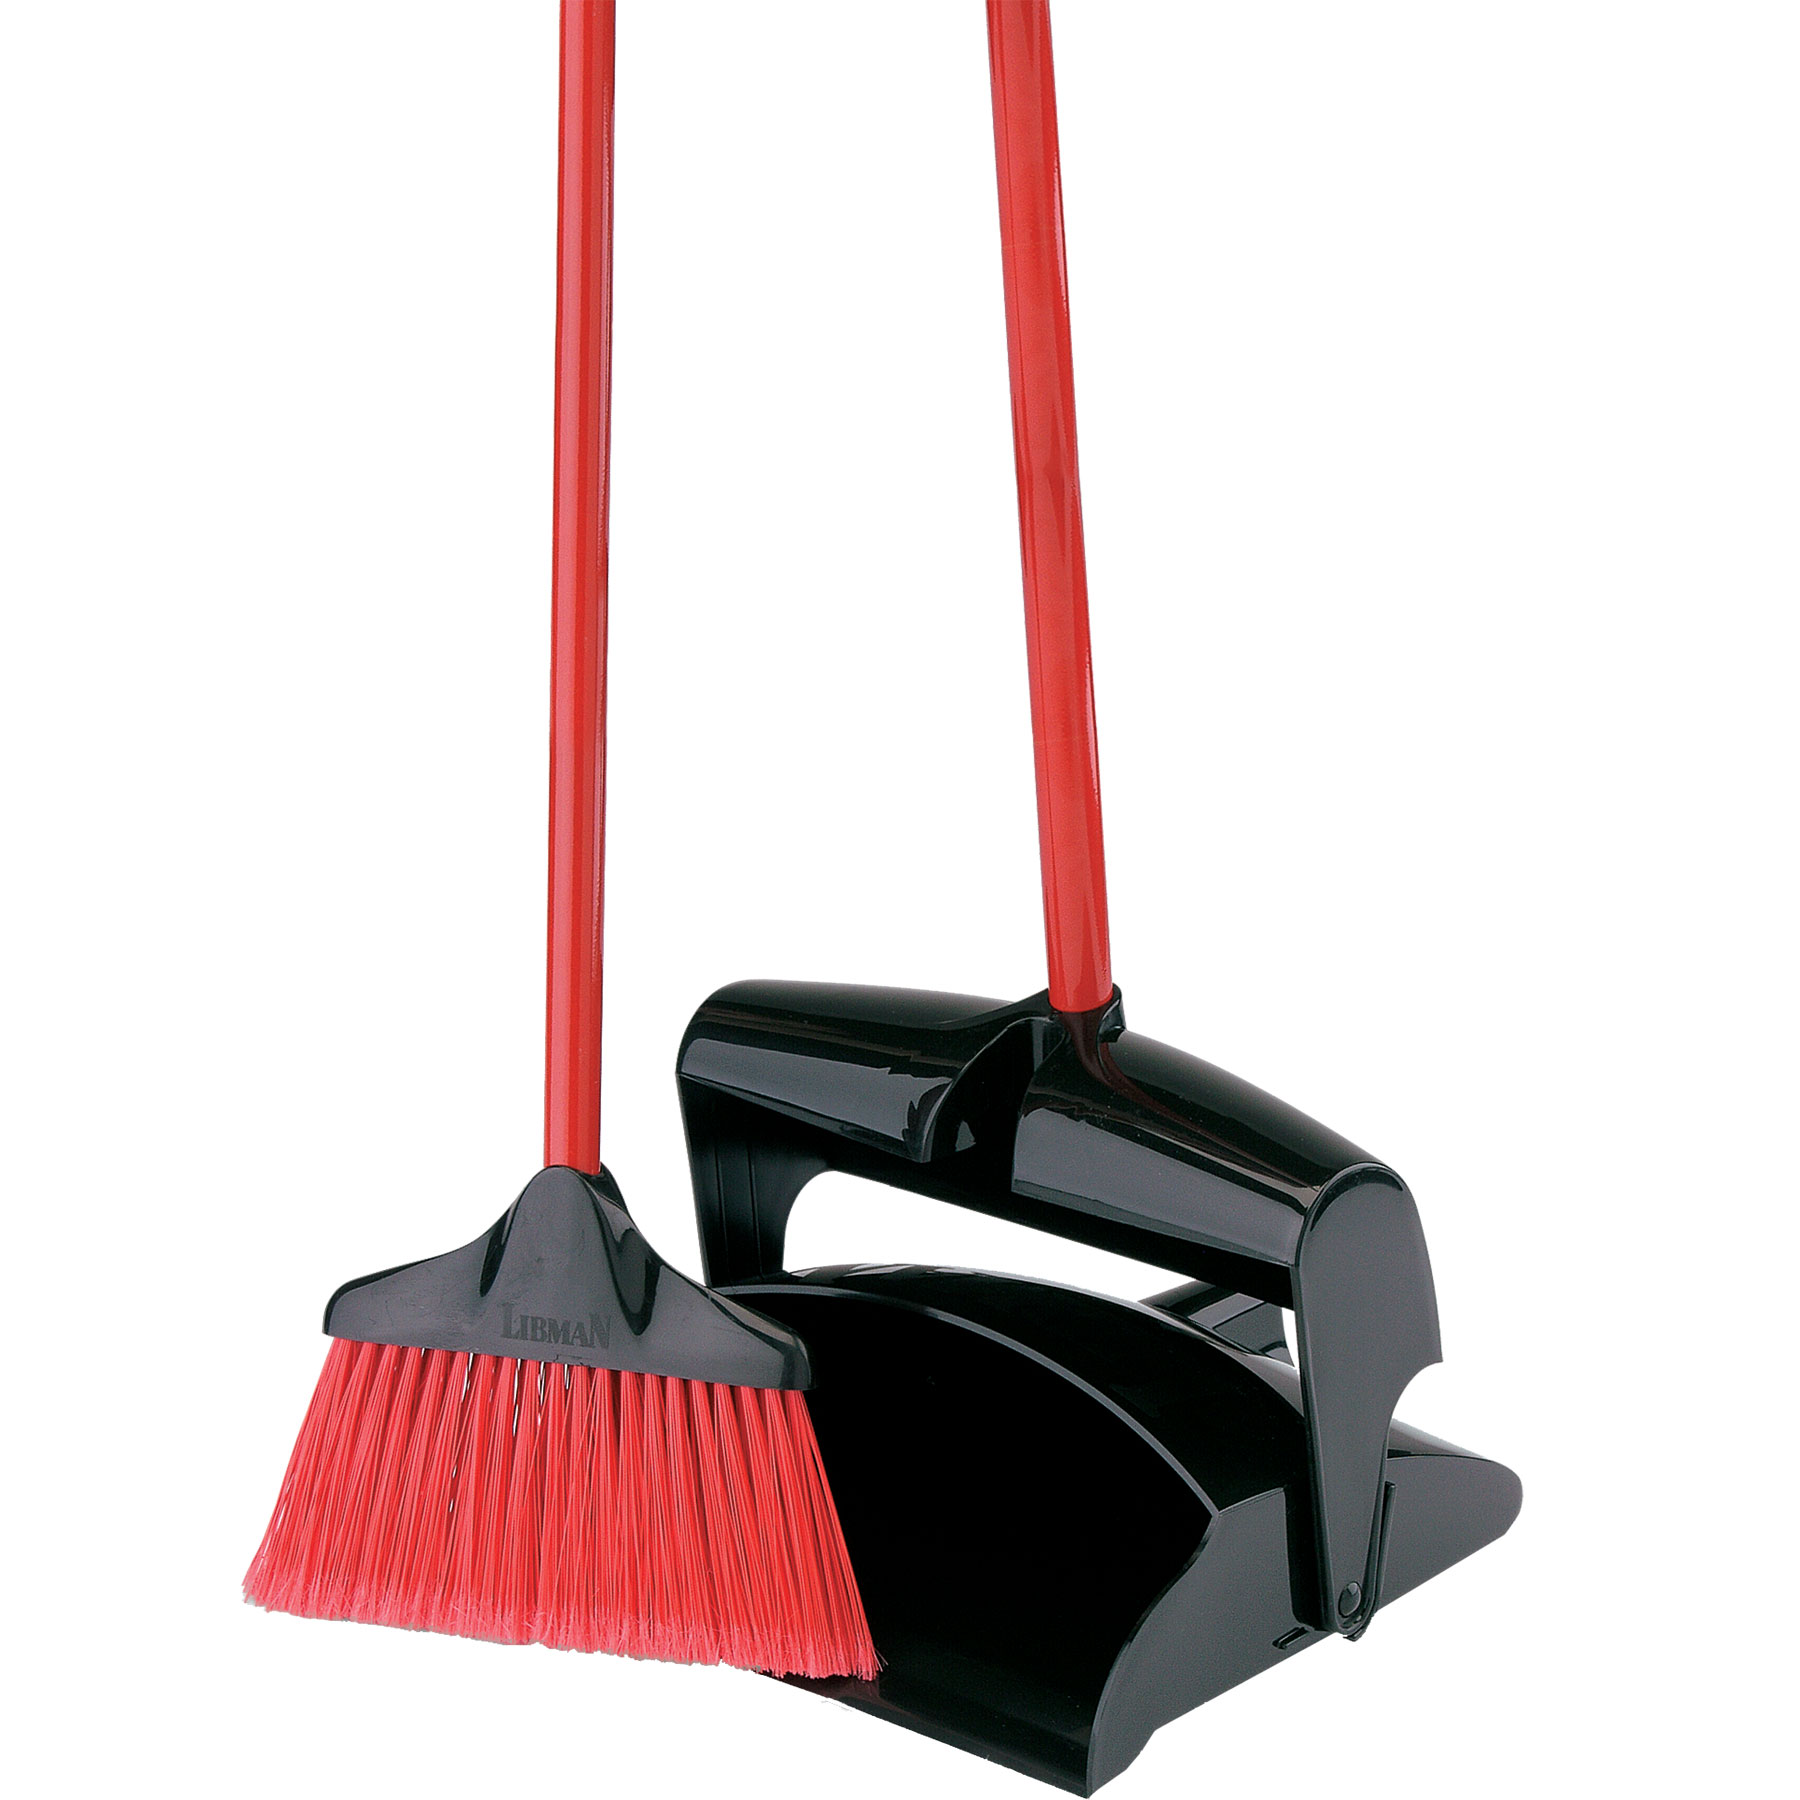 libman lobby broom dust pan closed lid food grocery cleaning supplies brooms mops. Black Bedroom Furniture Sets. Home Design Ideas